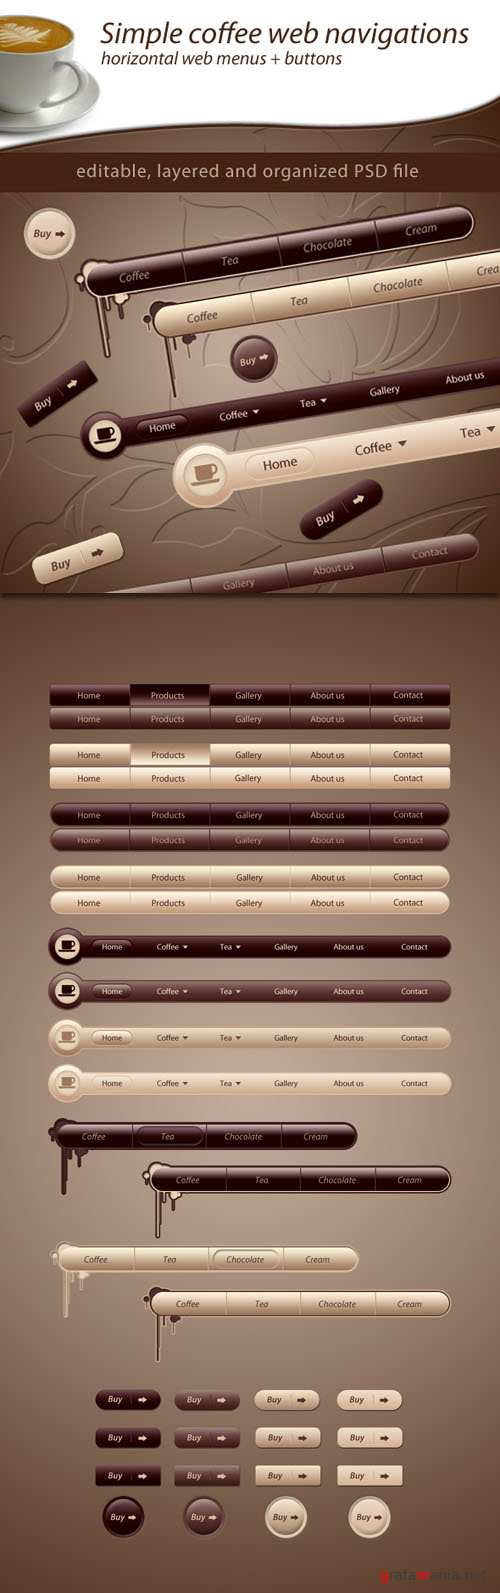 Simple Coffee Web Navigations and Buttons PSD Template